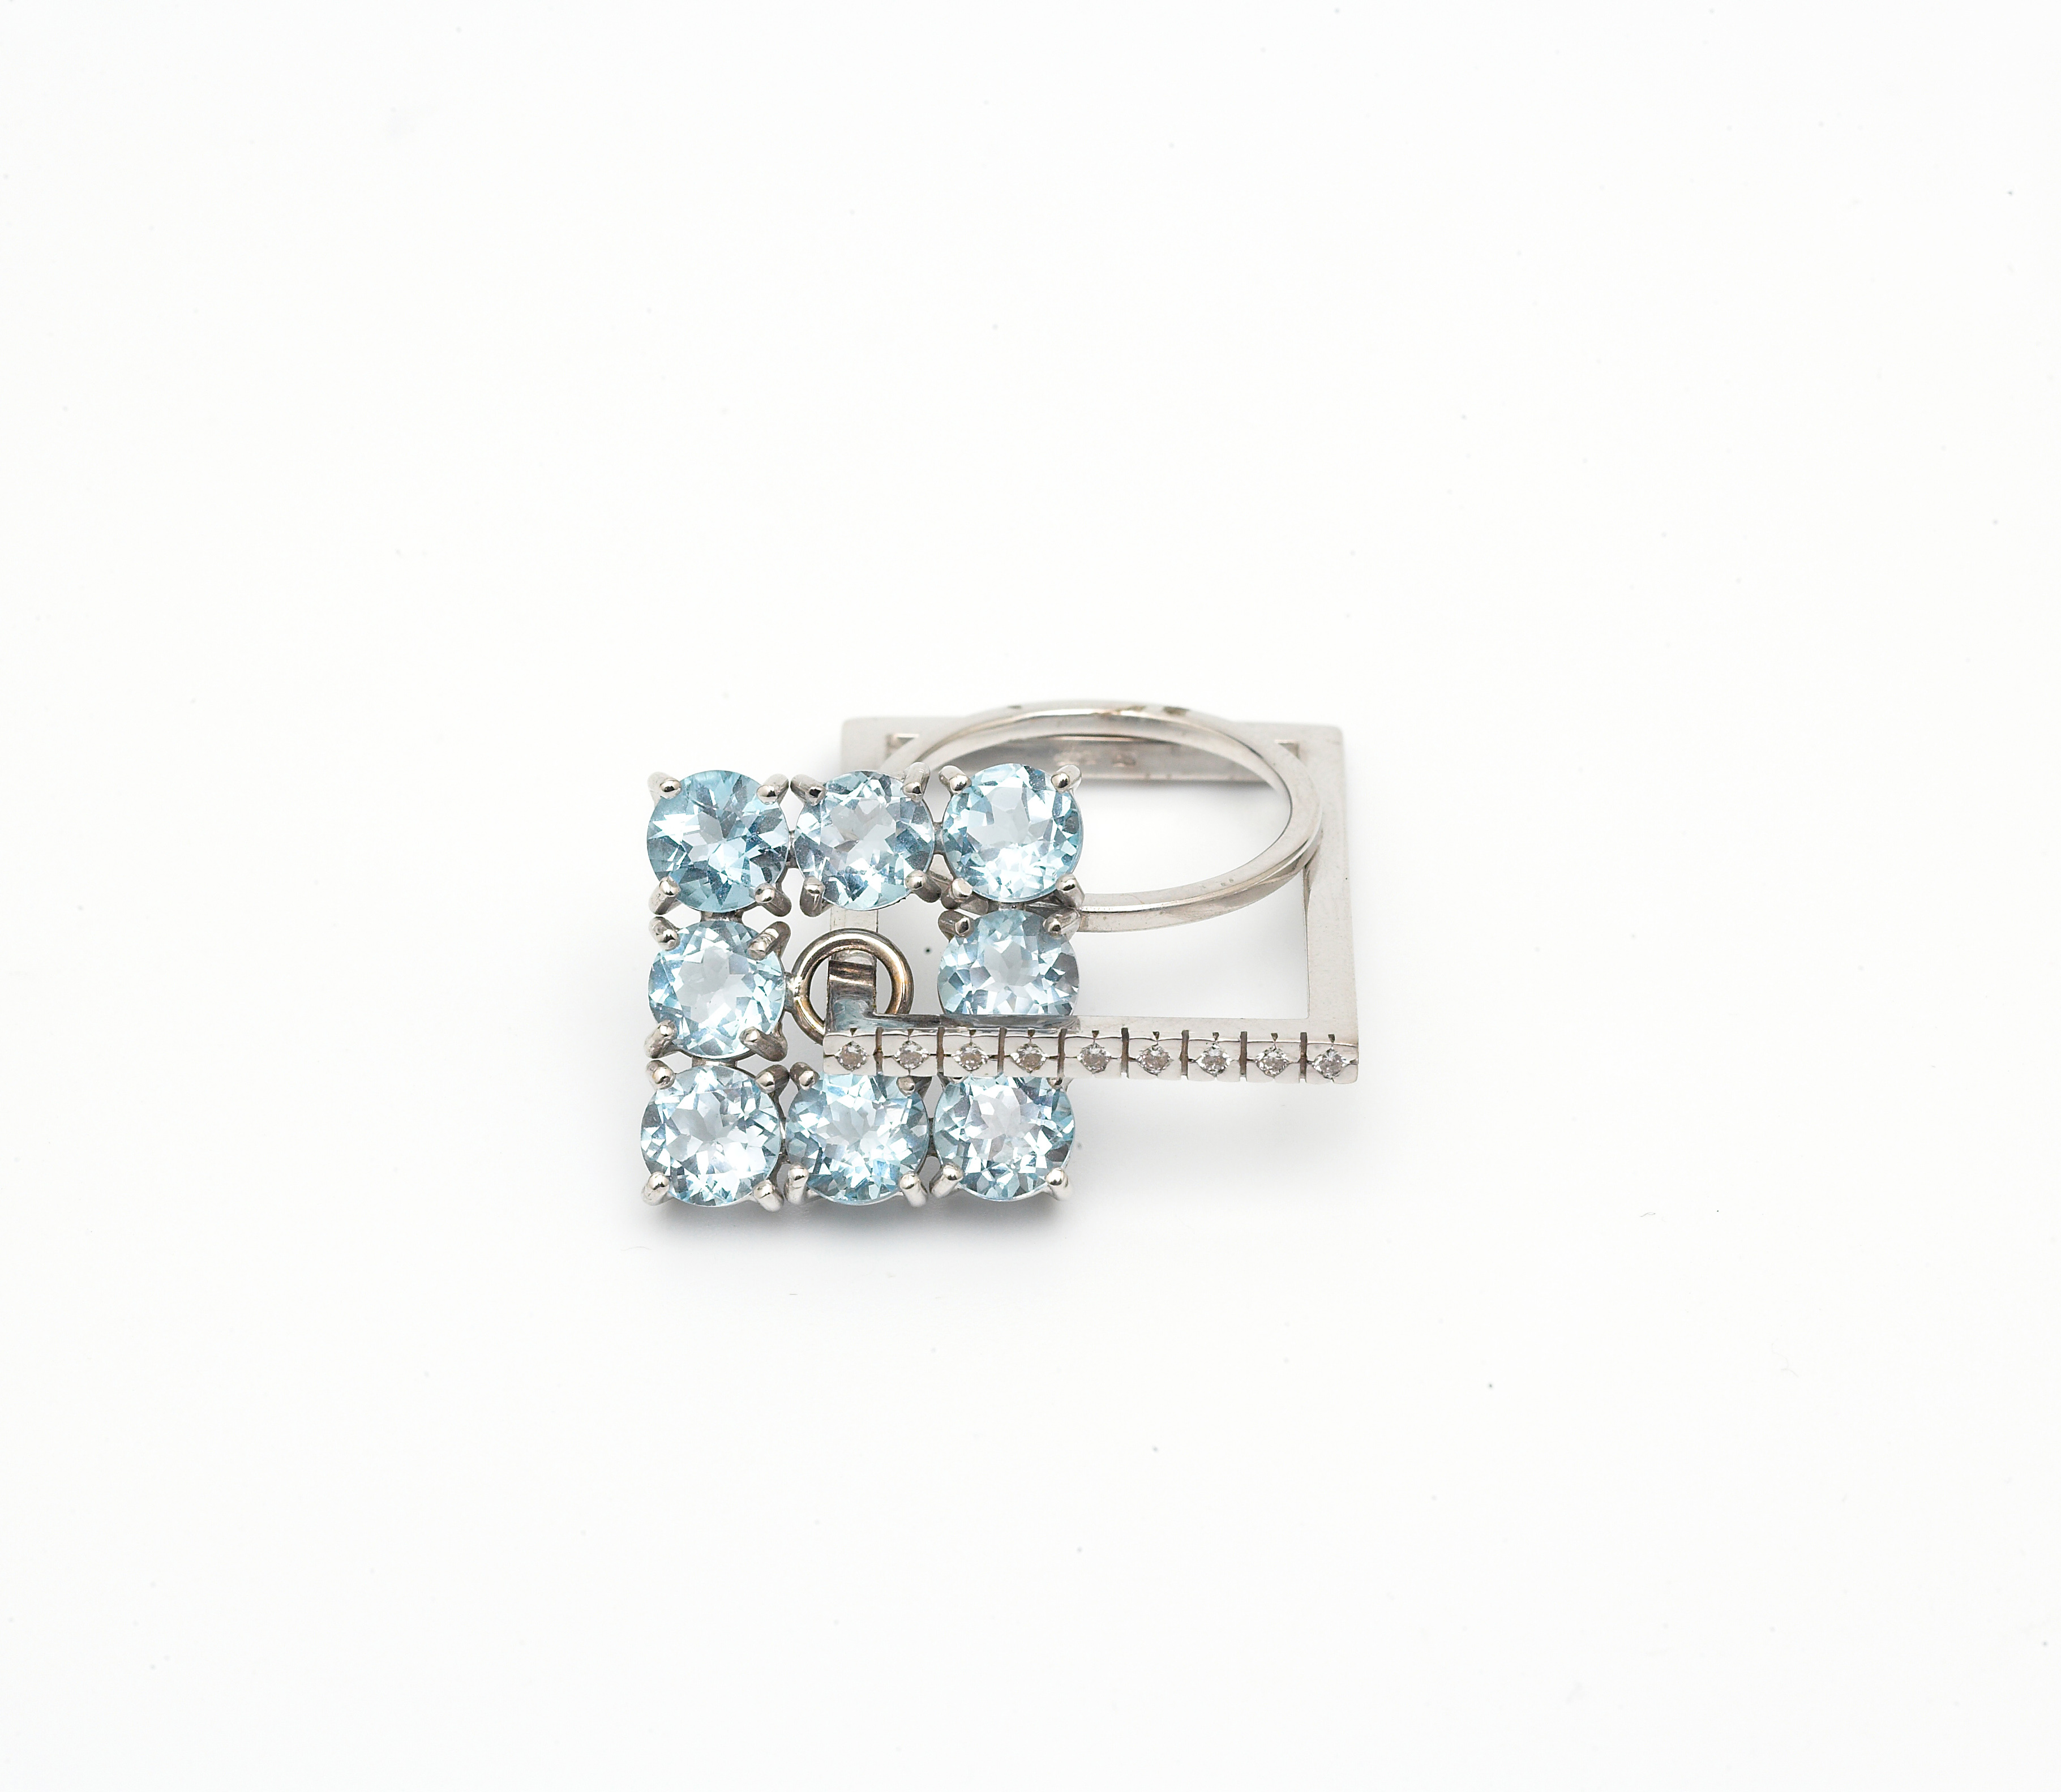 Ring in white gold 18kt with blue Topaz